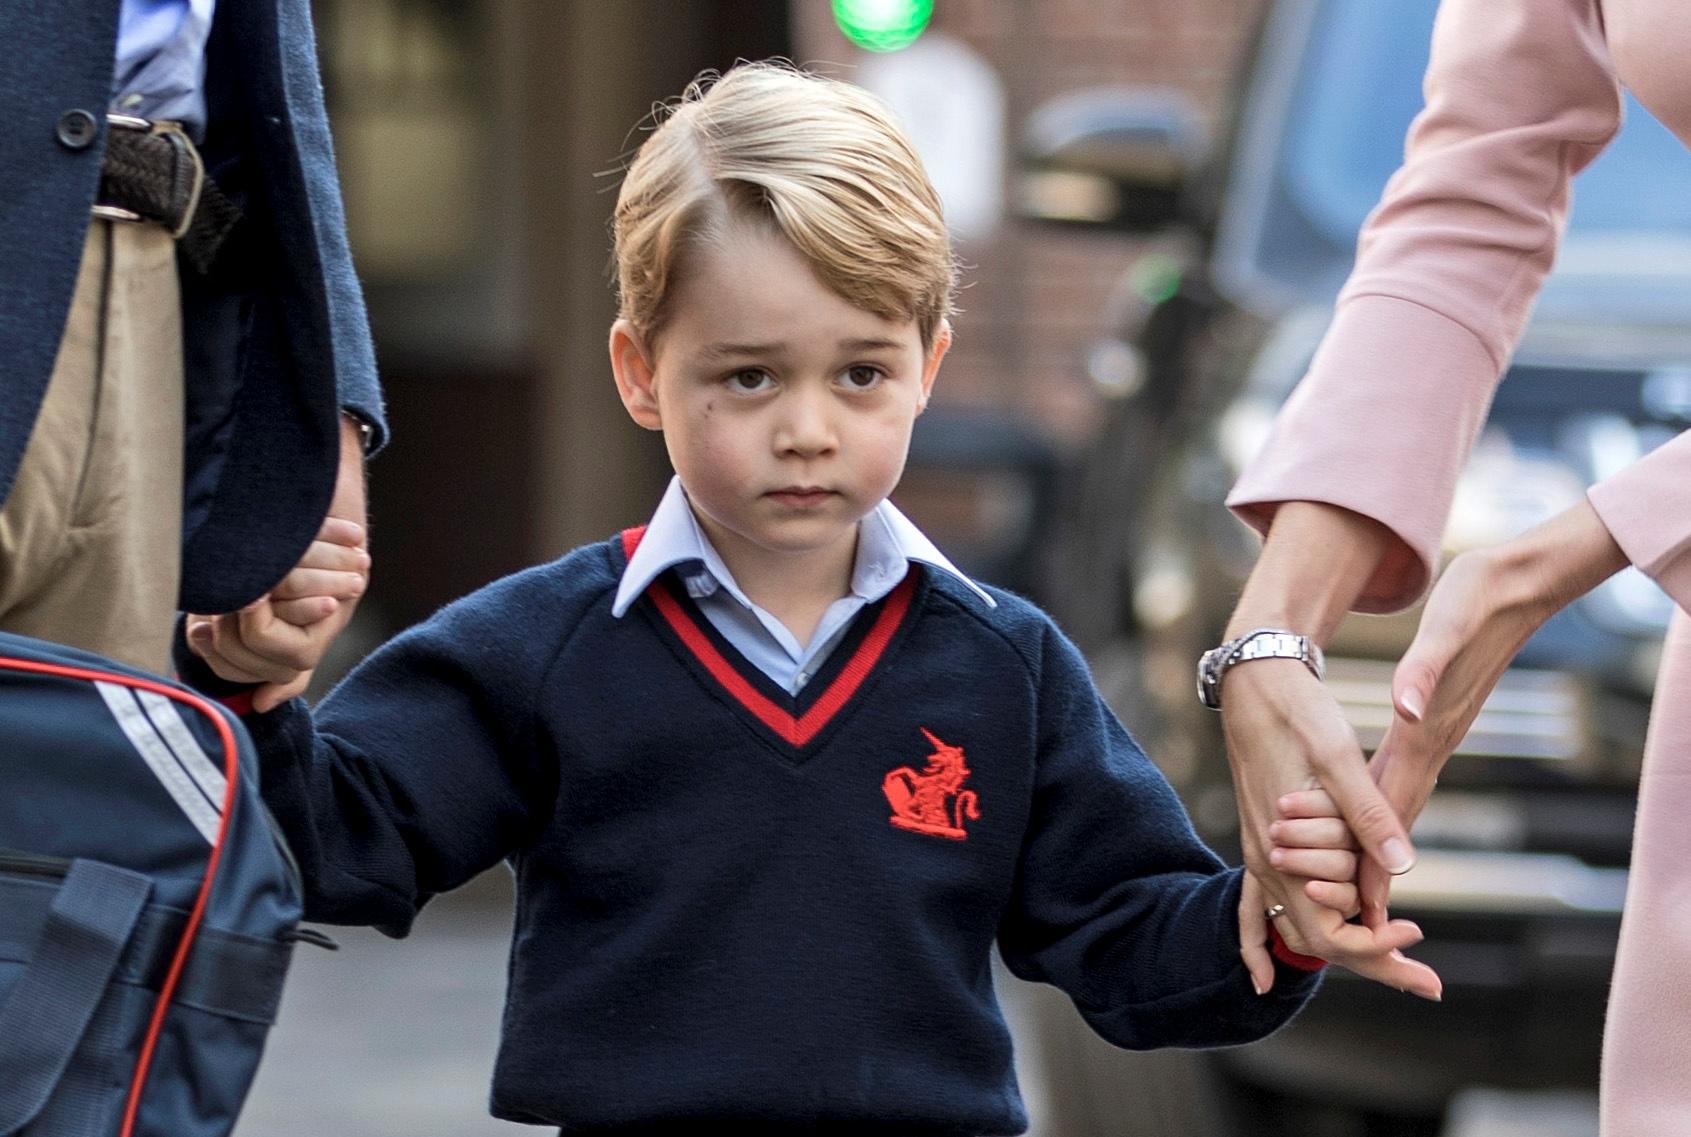 Helen Haslem, head of the lower school and Britain's Prince William hold Prince George's hands as he arrives for his first day of school at Thomas's school in Battersea, London, September 7, 2017. REUTERS/Richard Pohle/Pool